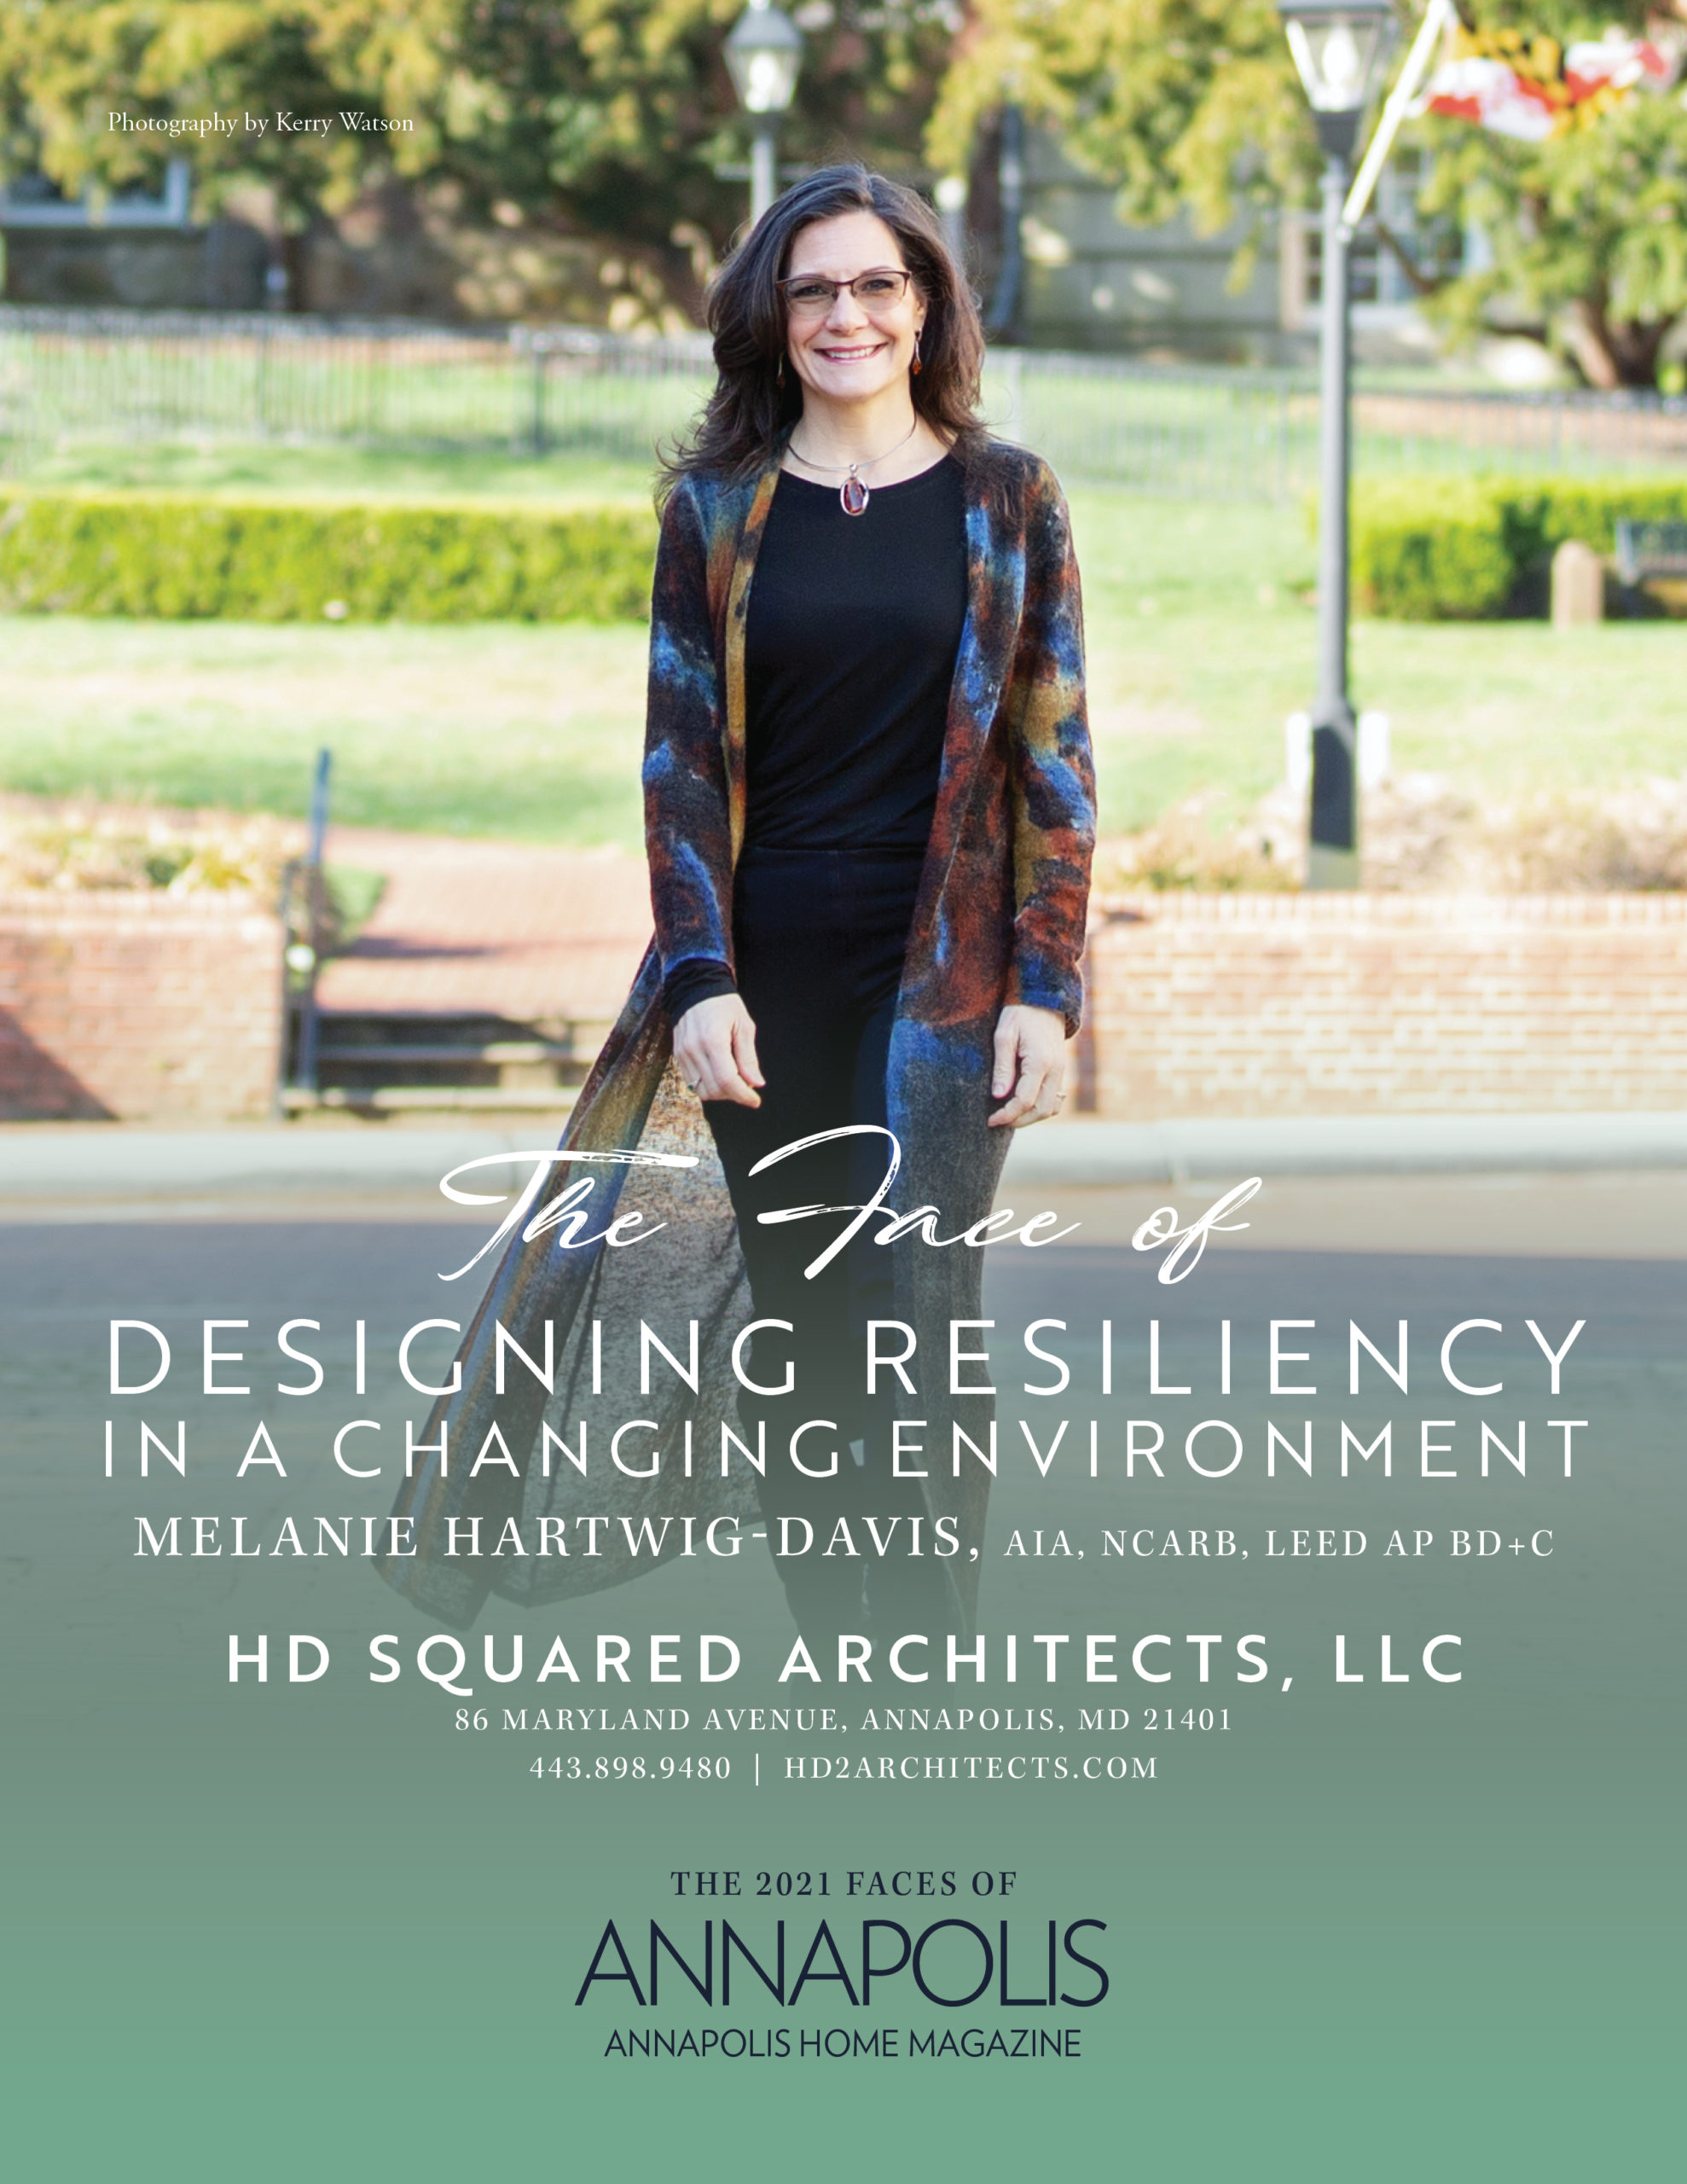 HD Squared Architects-Faces of Annapolis 2021